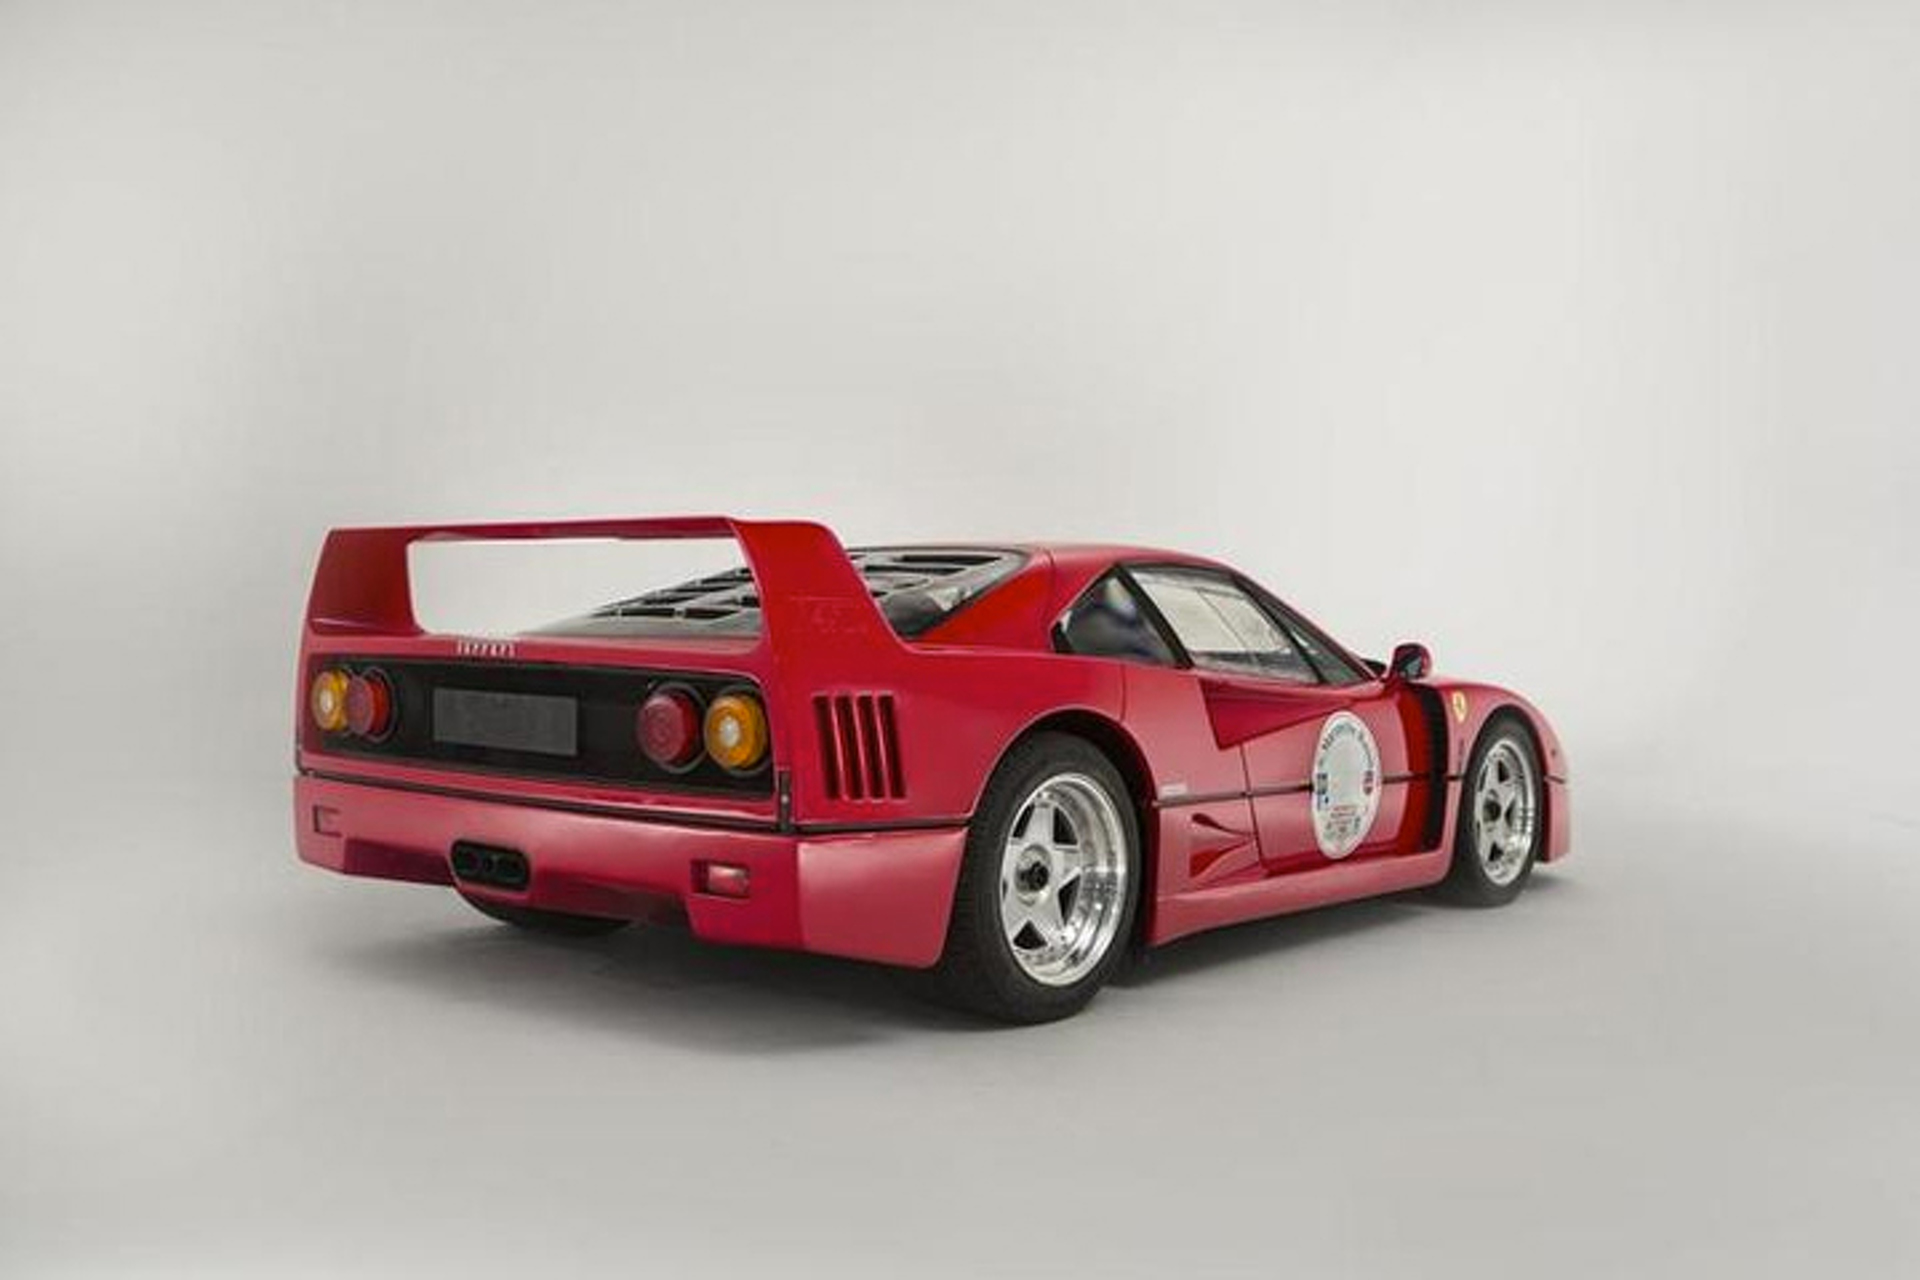 1991 Ferrari F40 Brings Over $1 Million at Goodwood Revival Auction